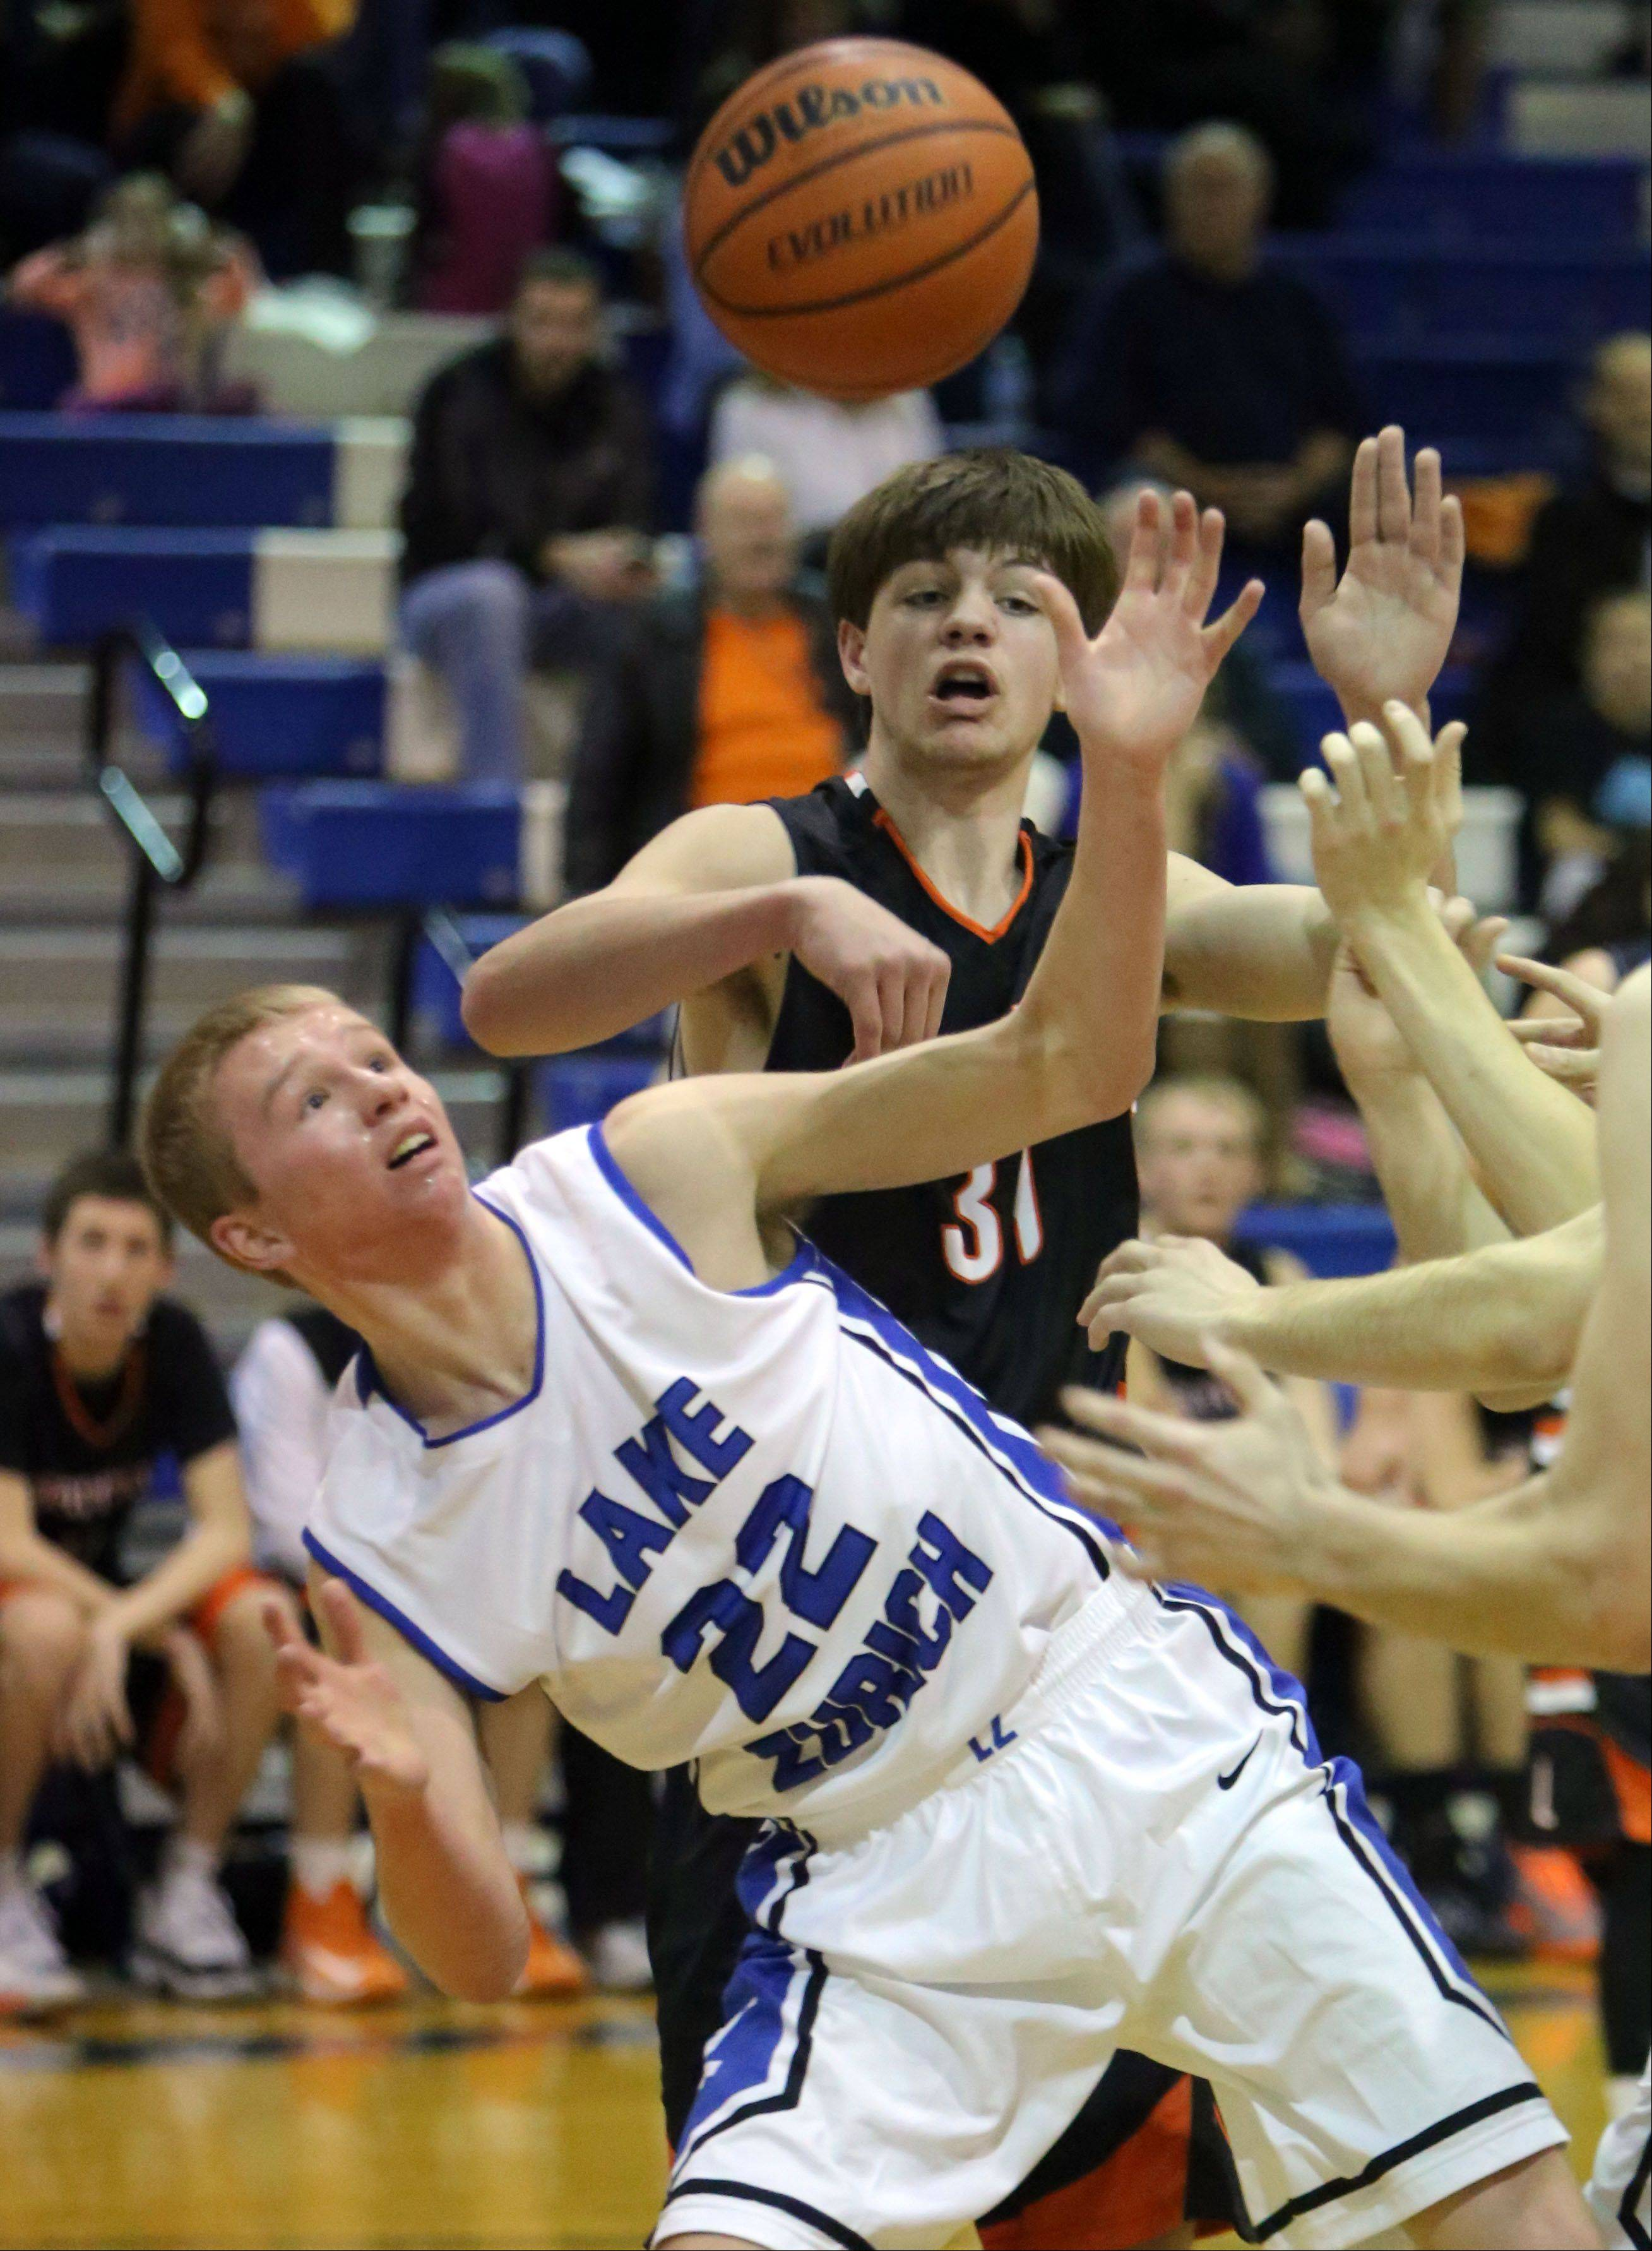 Lake Zurich's Brad Kruse, left, and Libertyville's Joe Borcia battle for a rebound on Wednesday night at Lake Zurich High School.